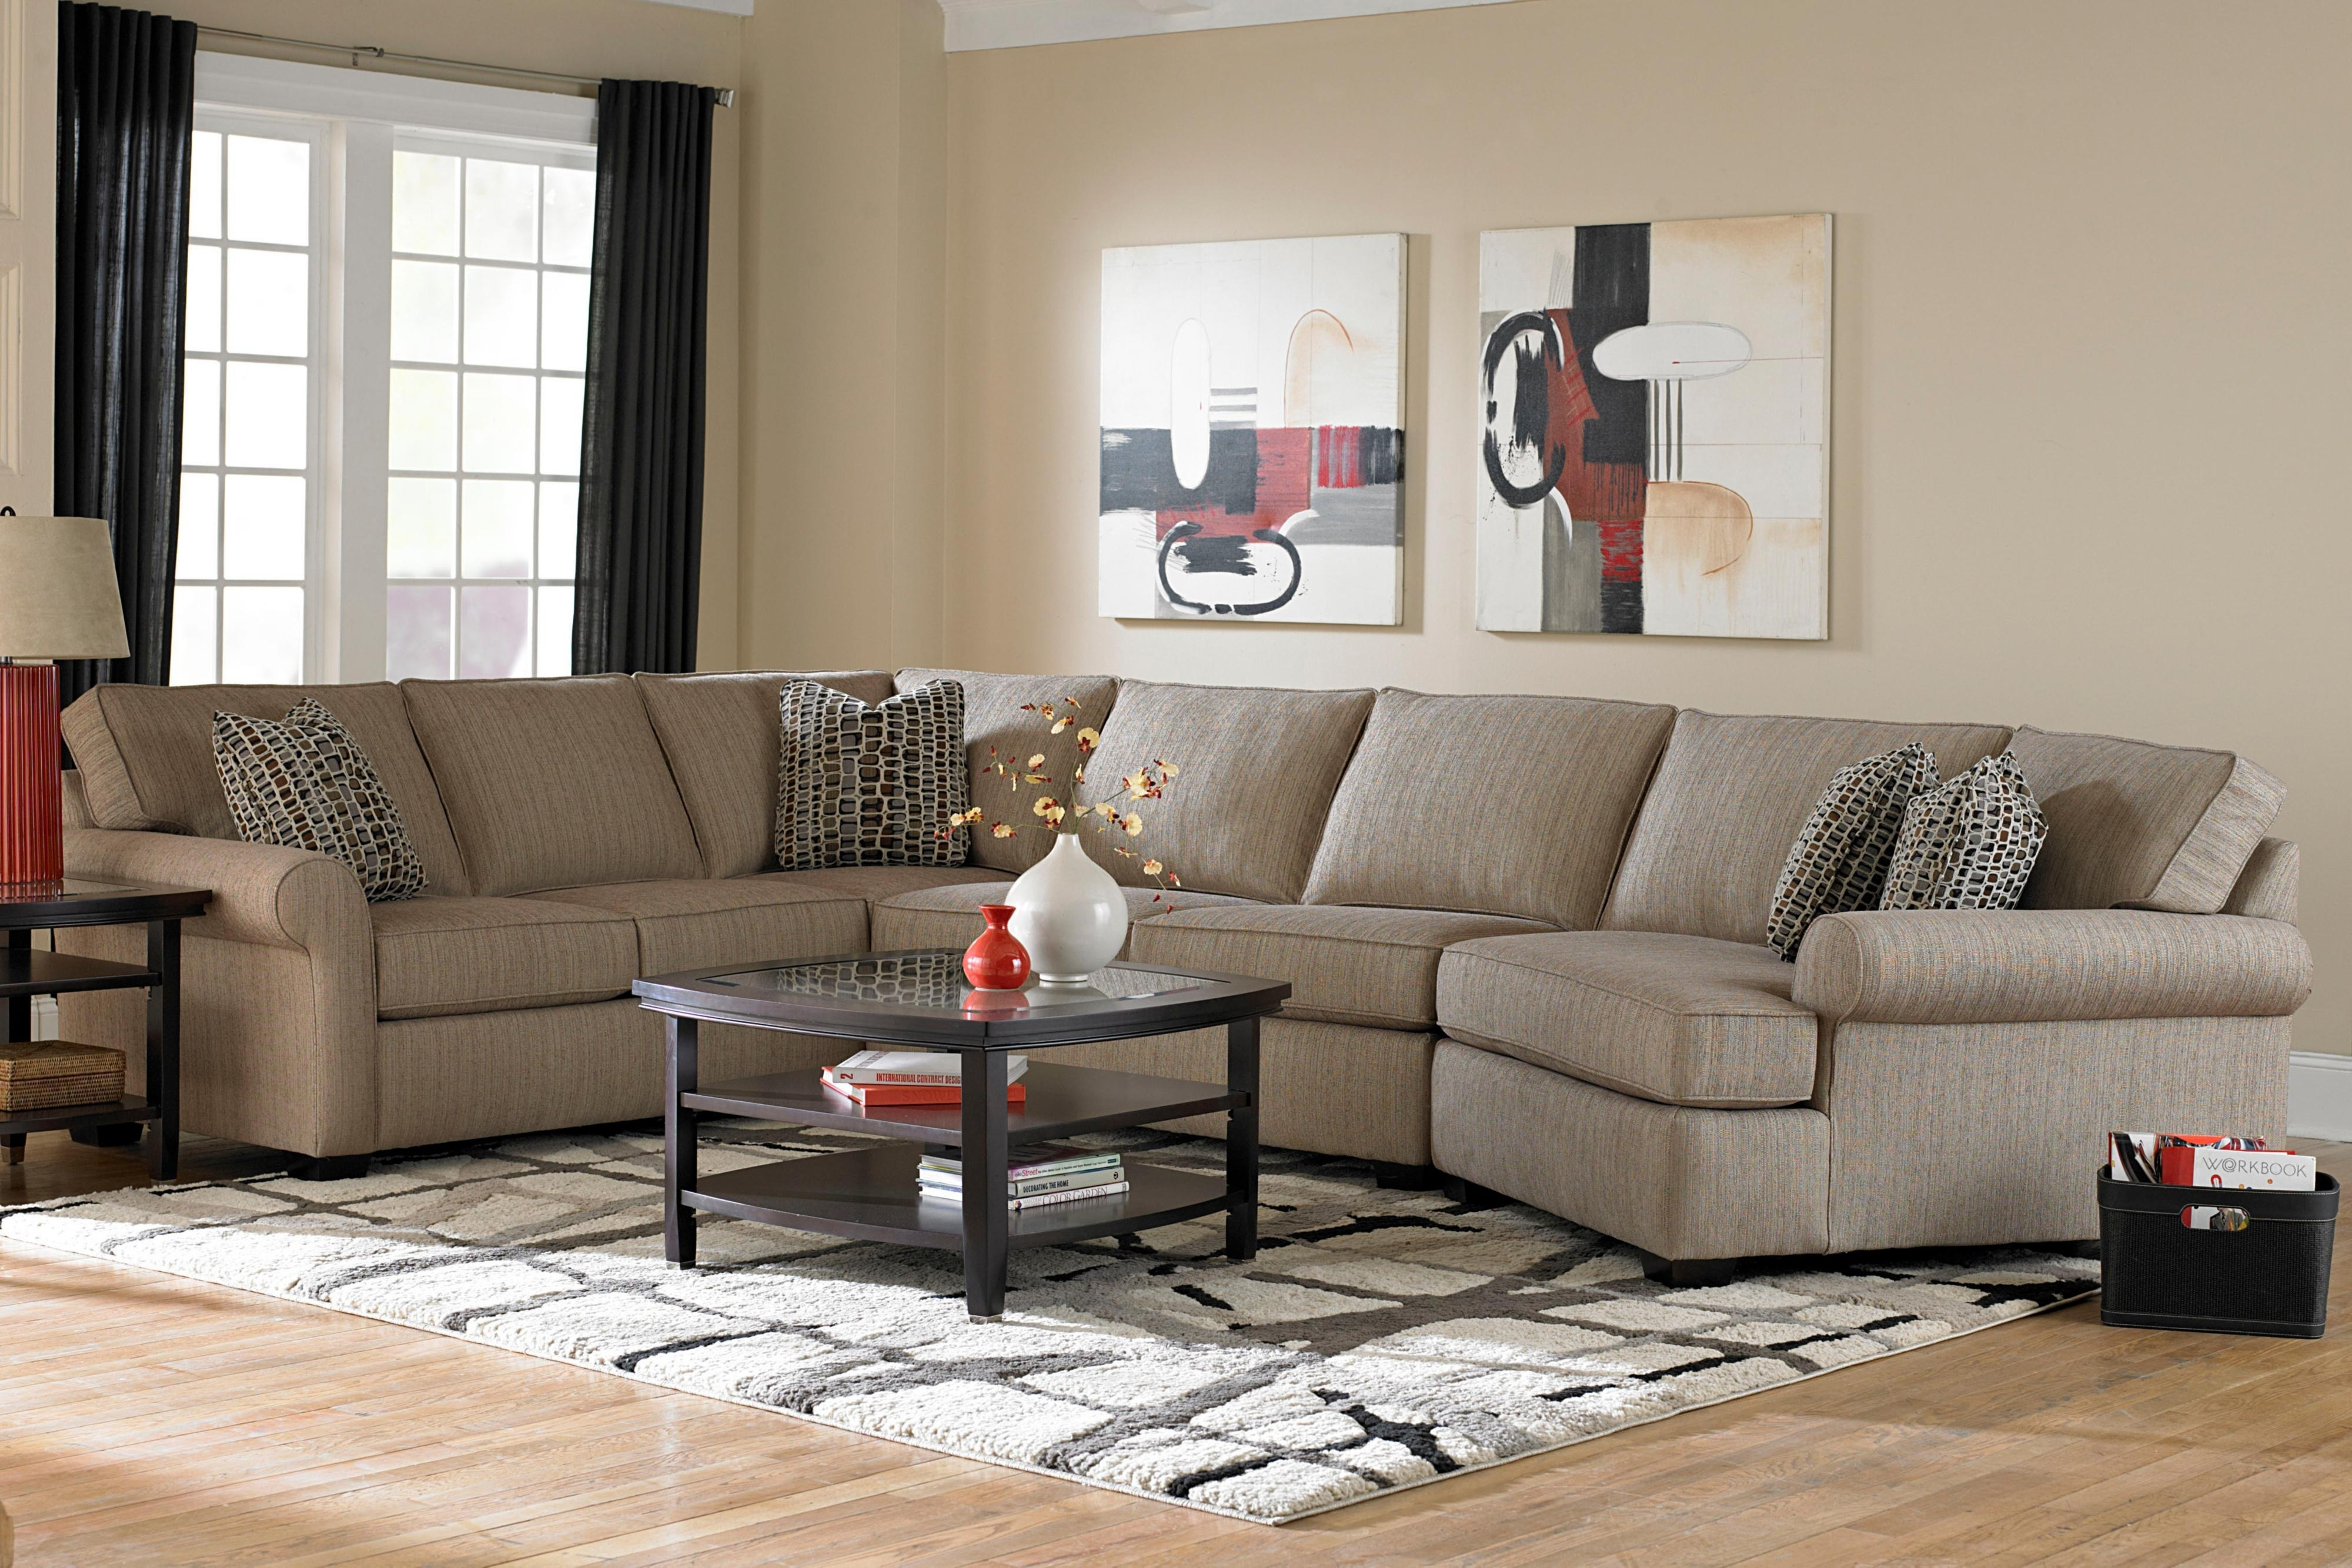 Broyhill Furniture Ethan Transitional Sectional Sofa With Right pertaining to Wichita Ks Sectional Sofas (Image 7 of 10)